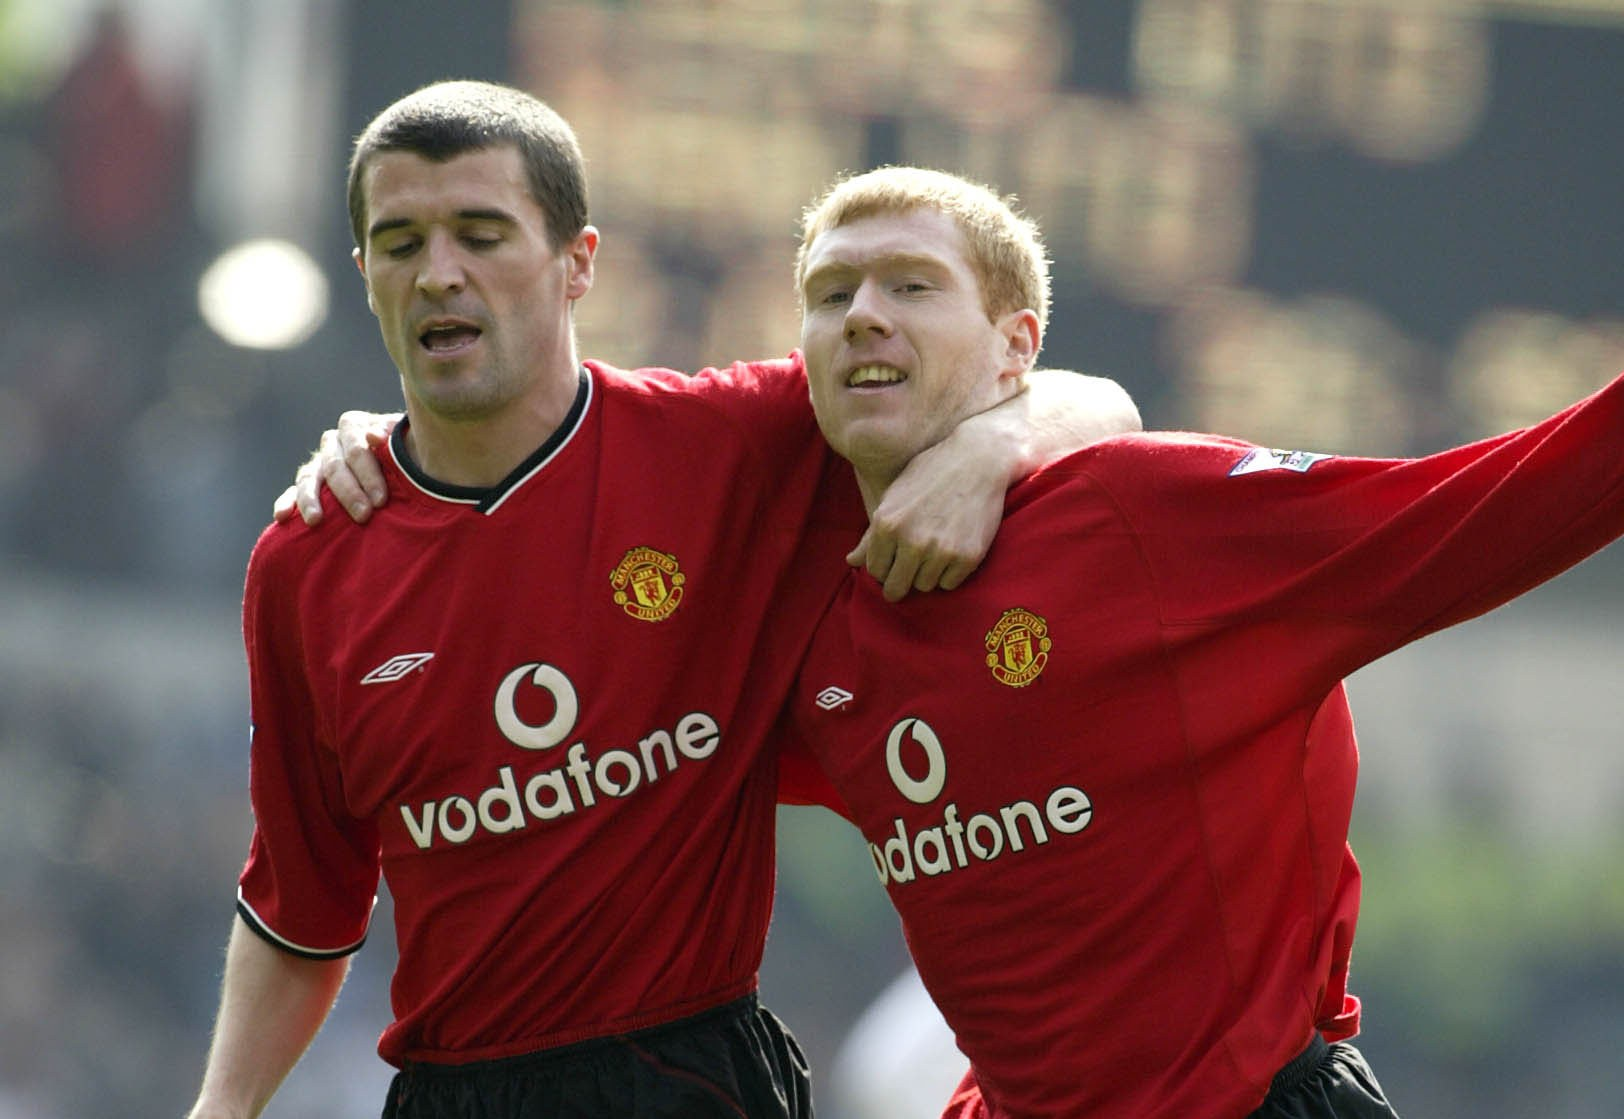 Rooney Ronaldo & Manchester United s greatest ever partnerships